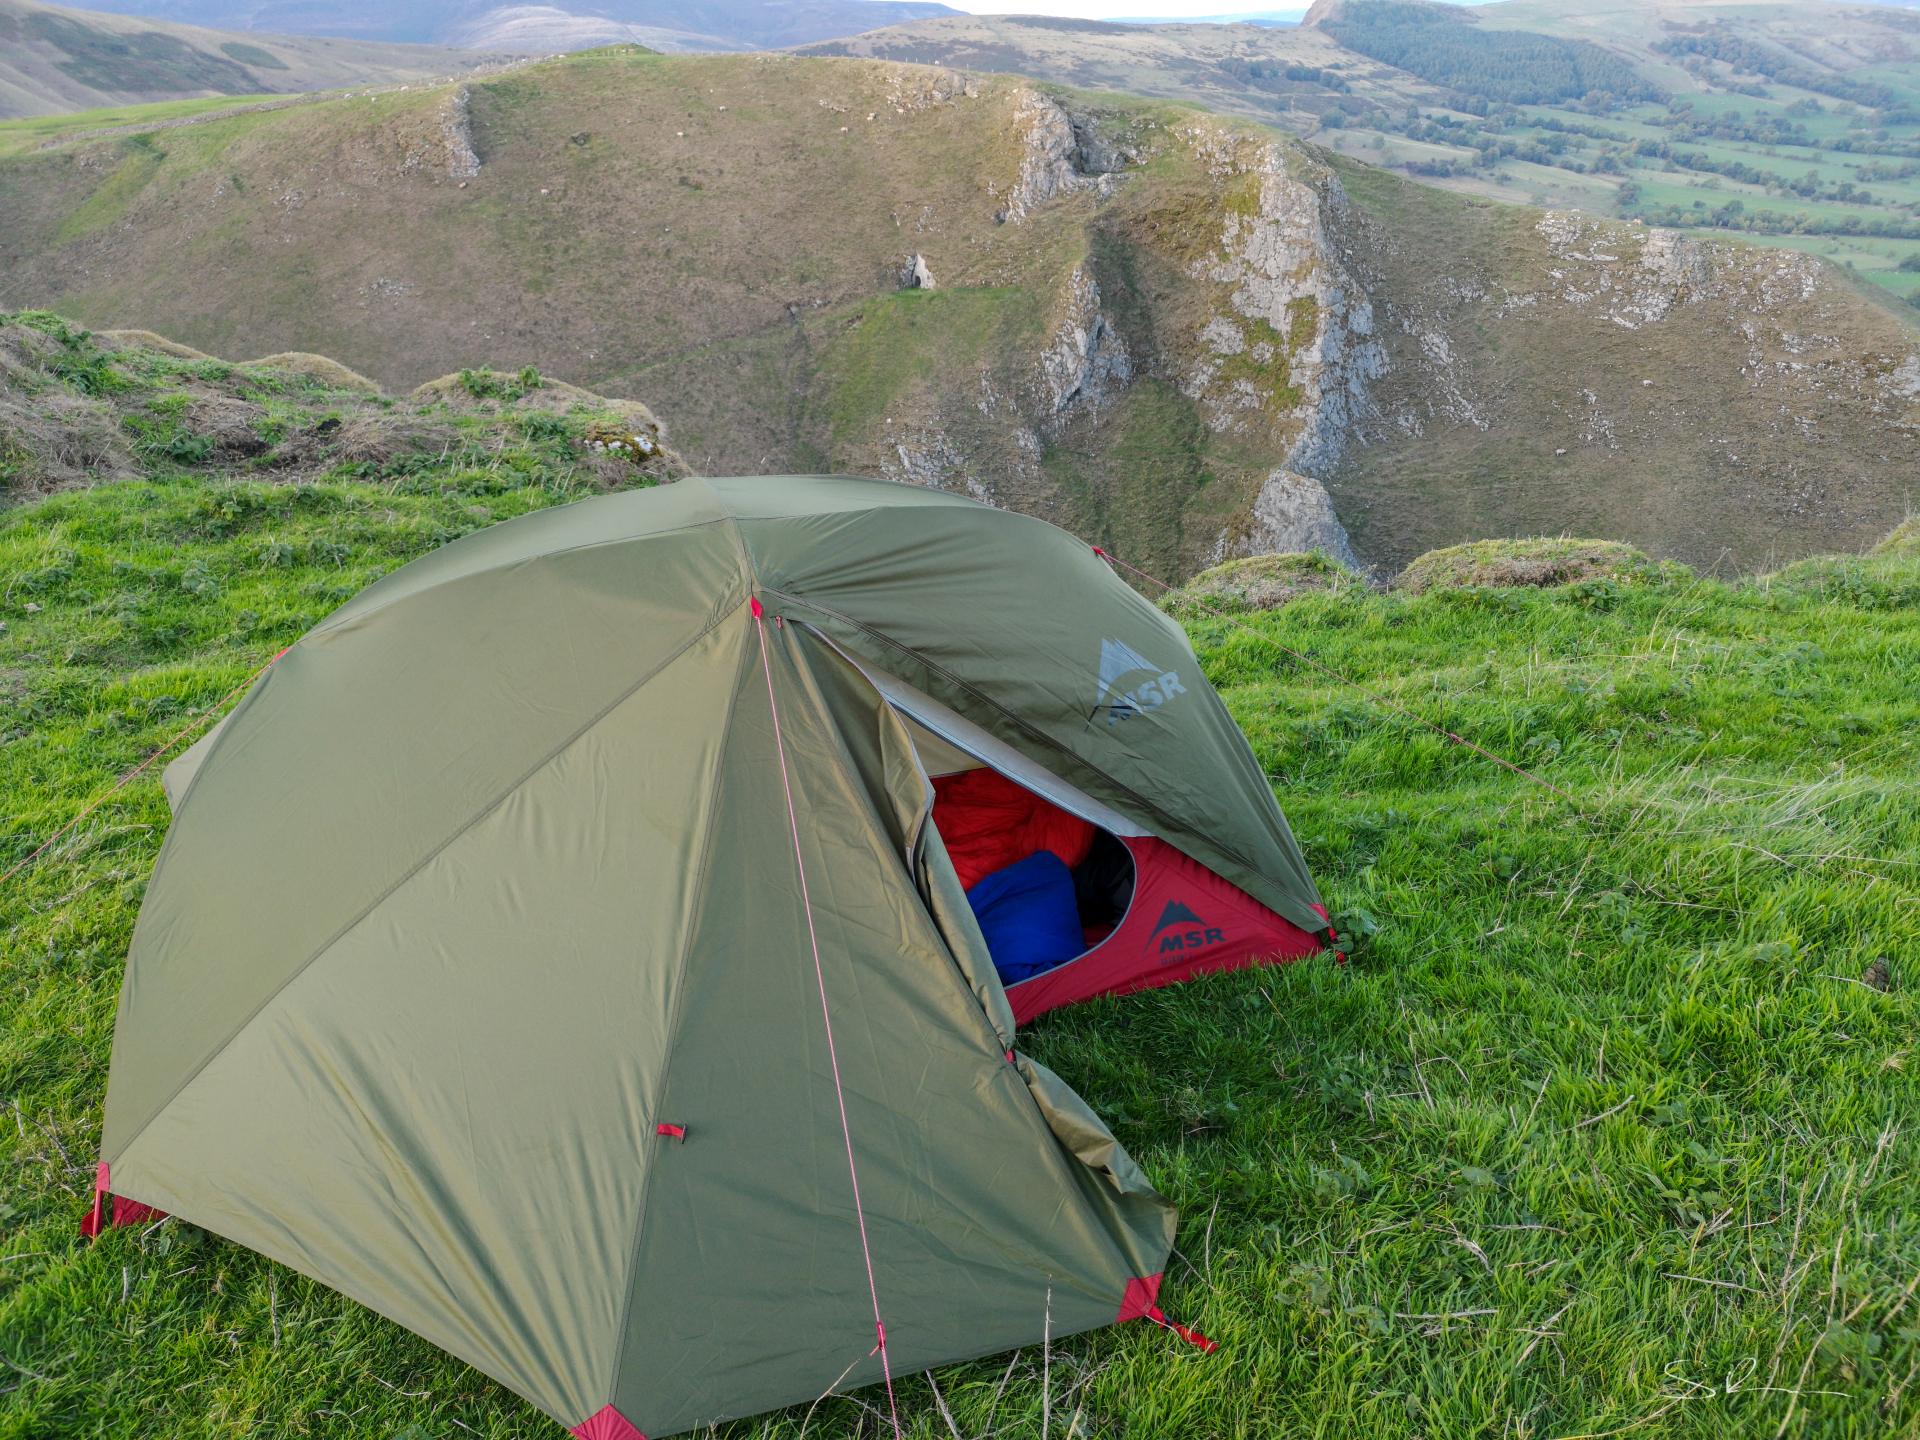 Winter Photography – Wild Camping Gear & Changes